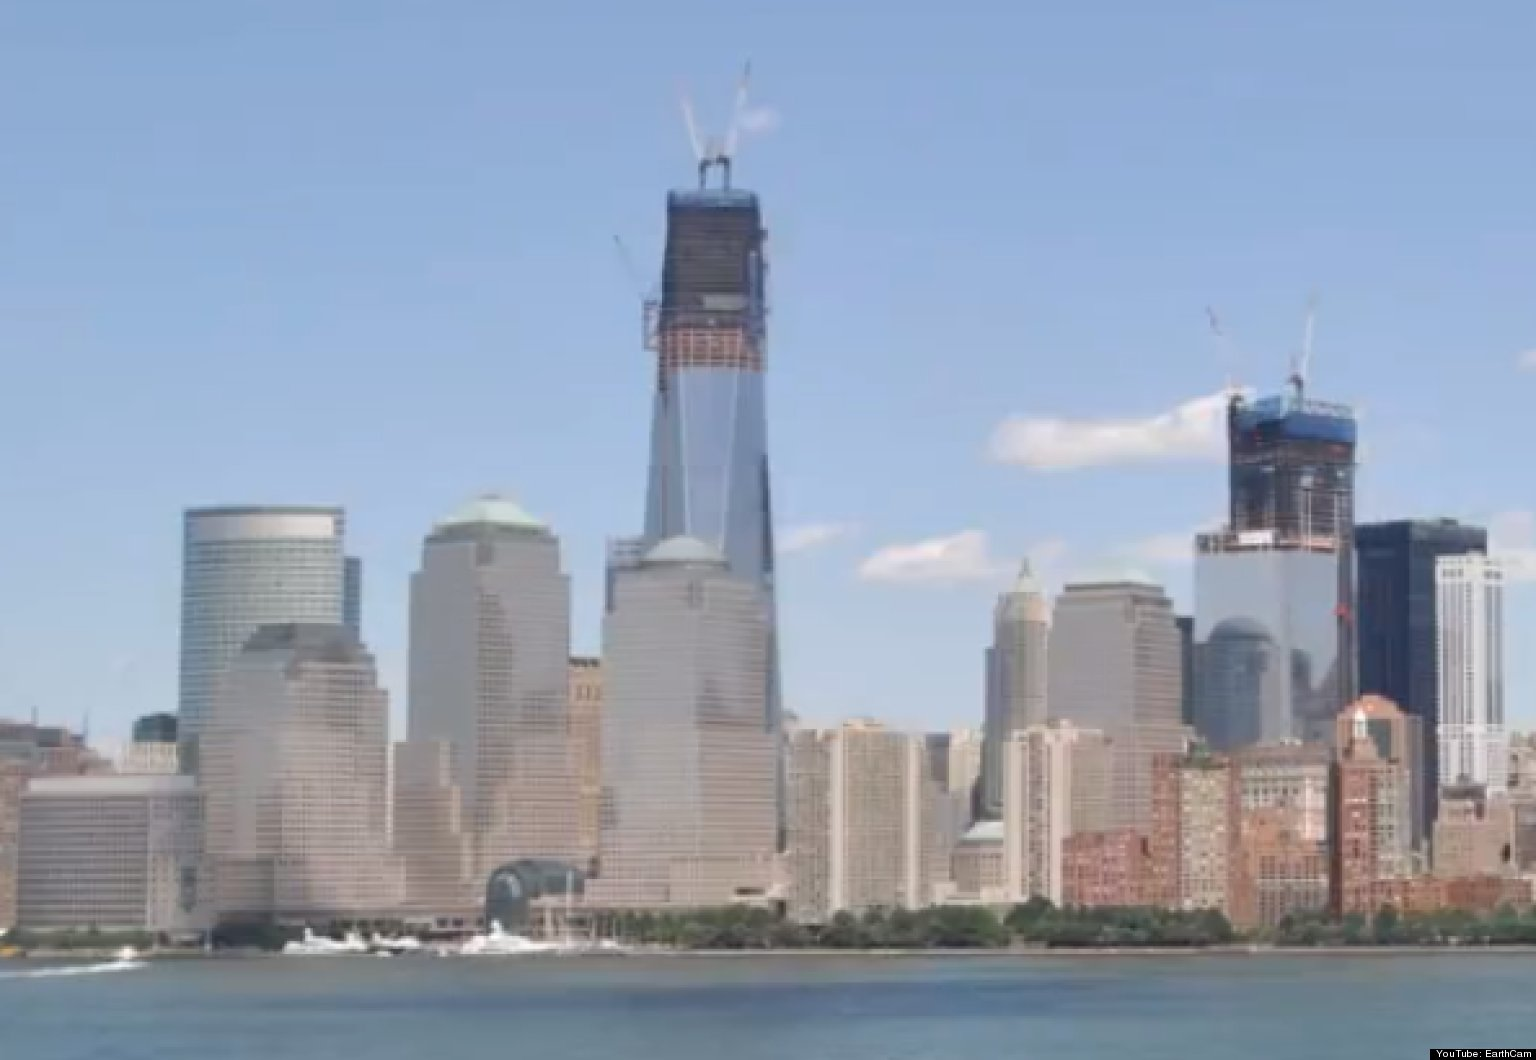 One world trade center time lapse video earthcam shows freedom one world trade center time lapse video earthcam shows freedom tower progress huffpost gumiabroncs Gallery